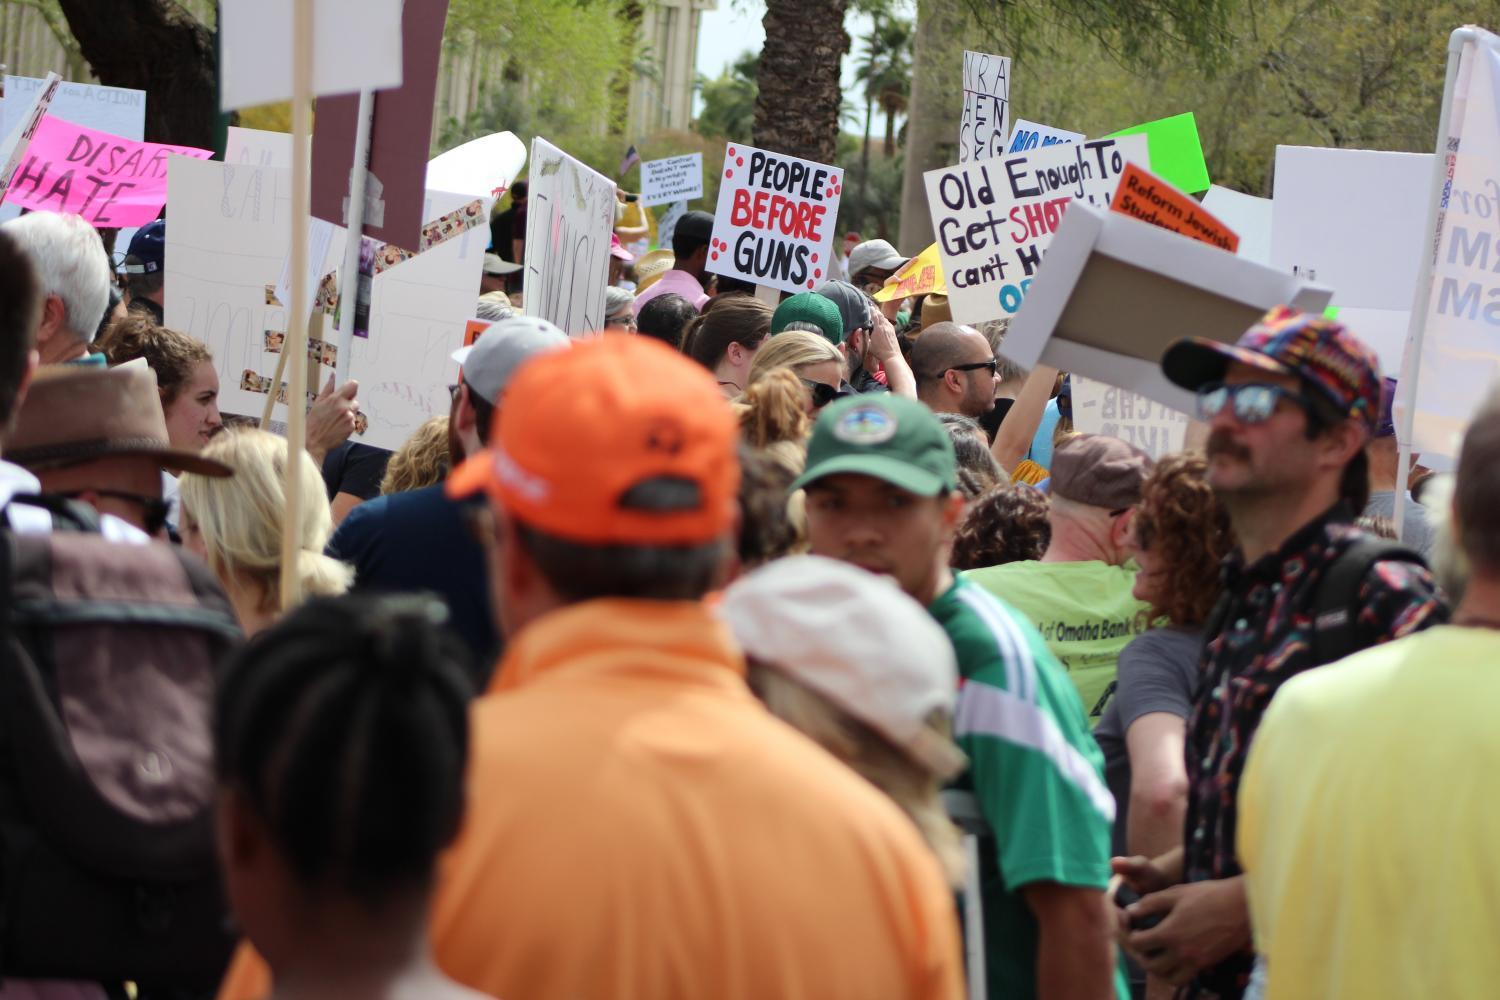 Thousands of Arizona teens showed up to the March For Our Lives demonstration at the Arizona Capitol on Saturday, joining a series of marches nationwide.